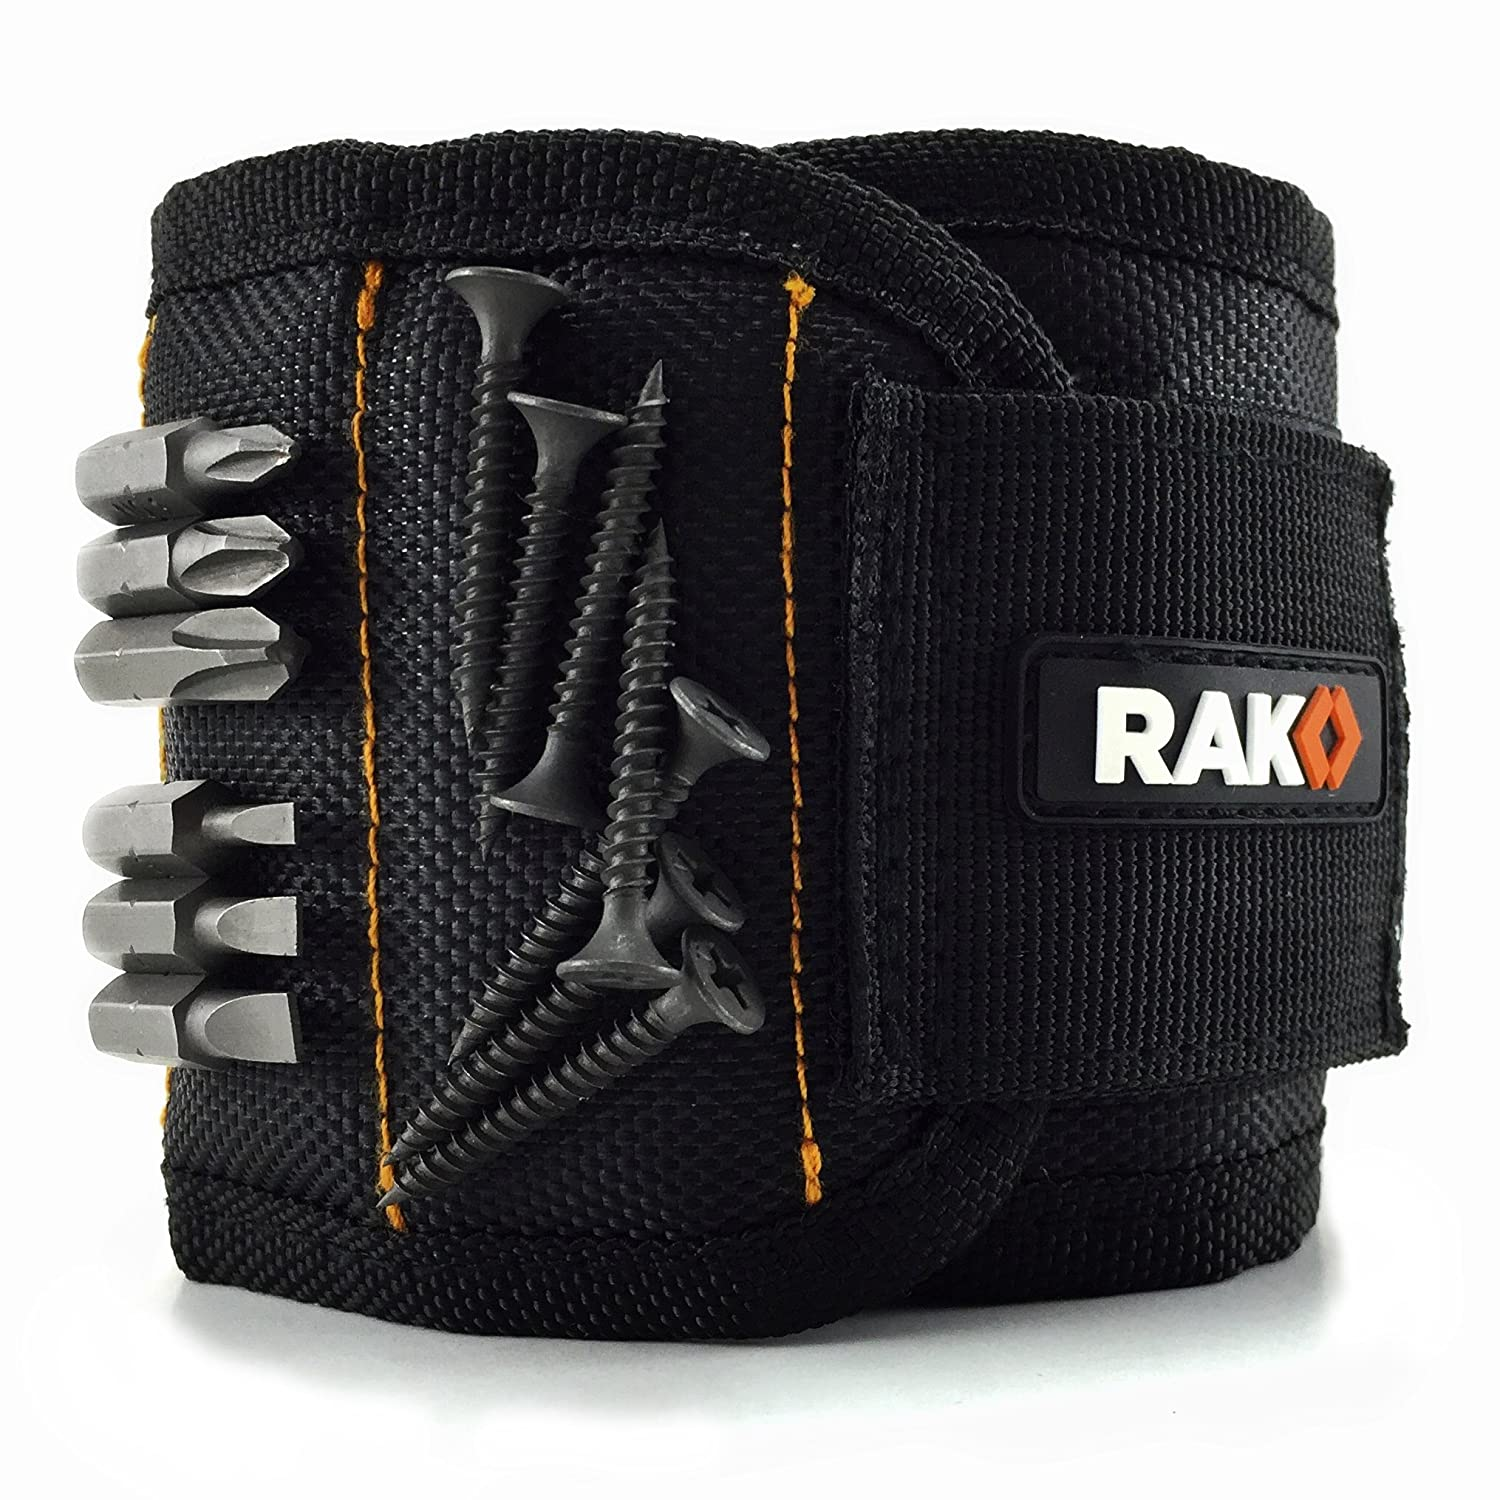 RAK Magnetic Wristband (1 Pack) with Strong Magnets for Holding Screws, Nails, Drill Bits